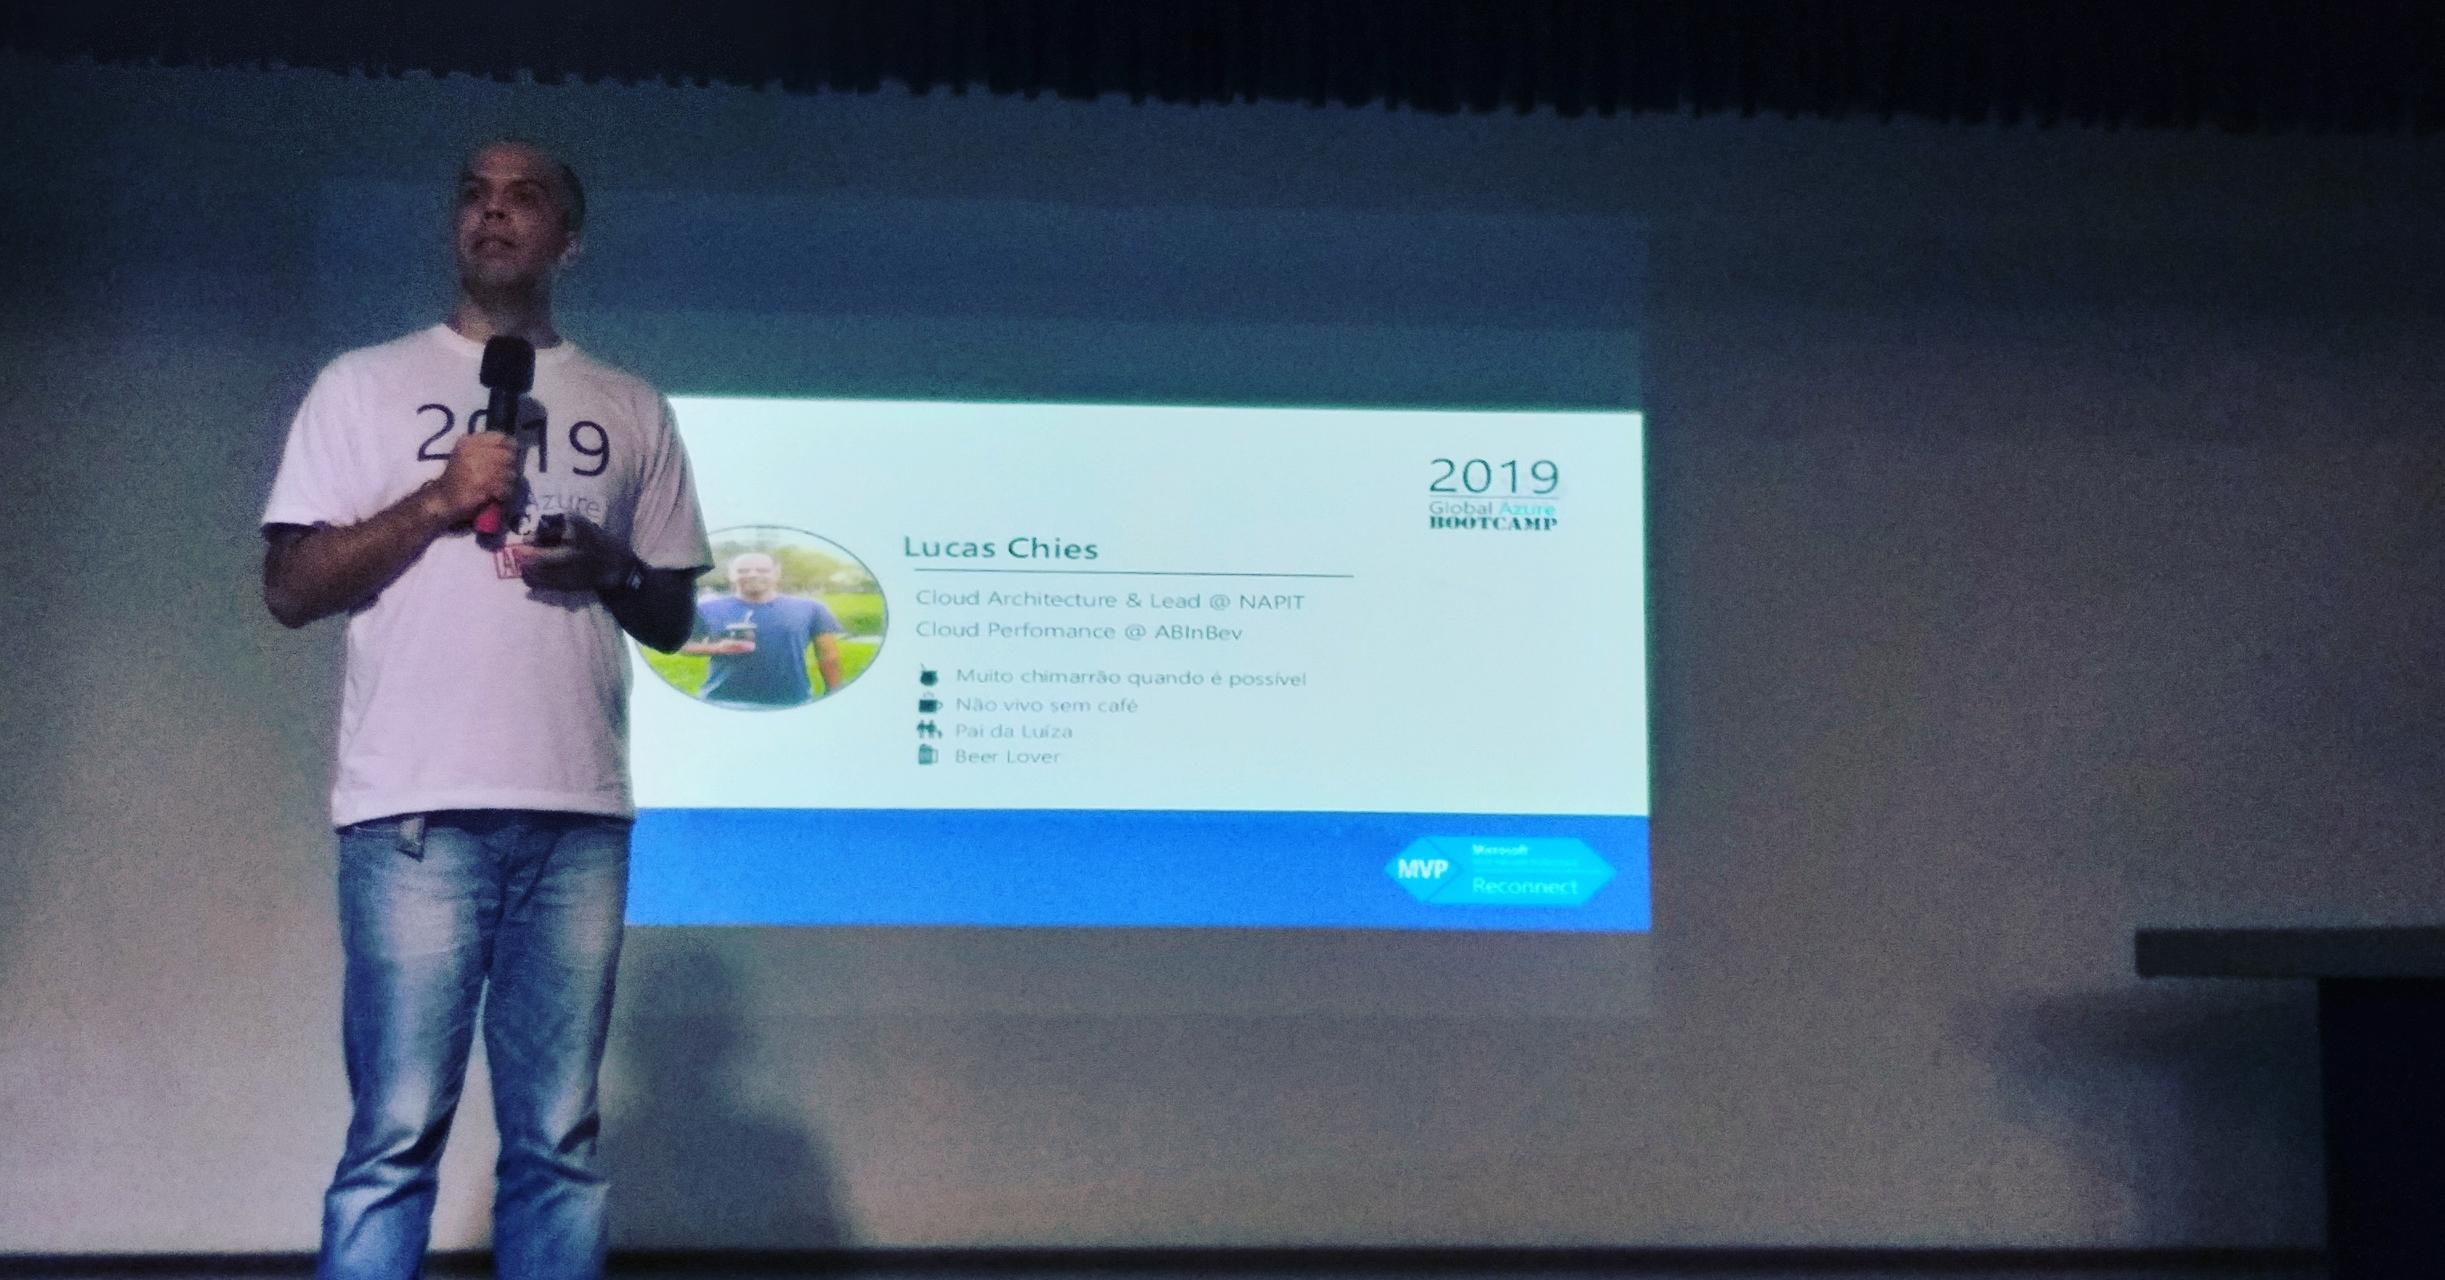 Governança Corporativa no Azure - Global Azure Bootcamp 2019